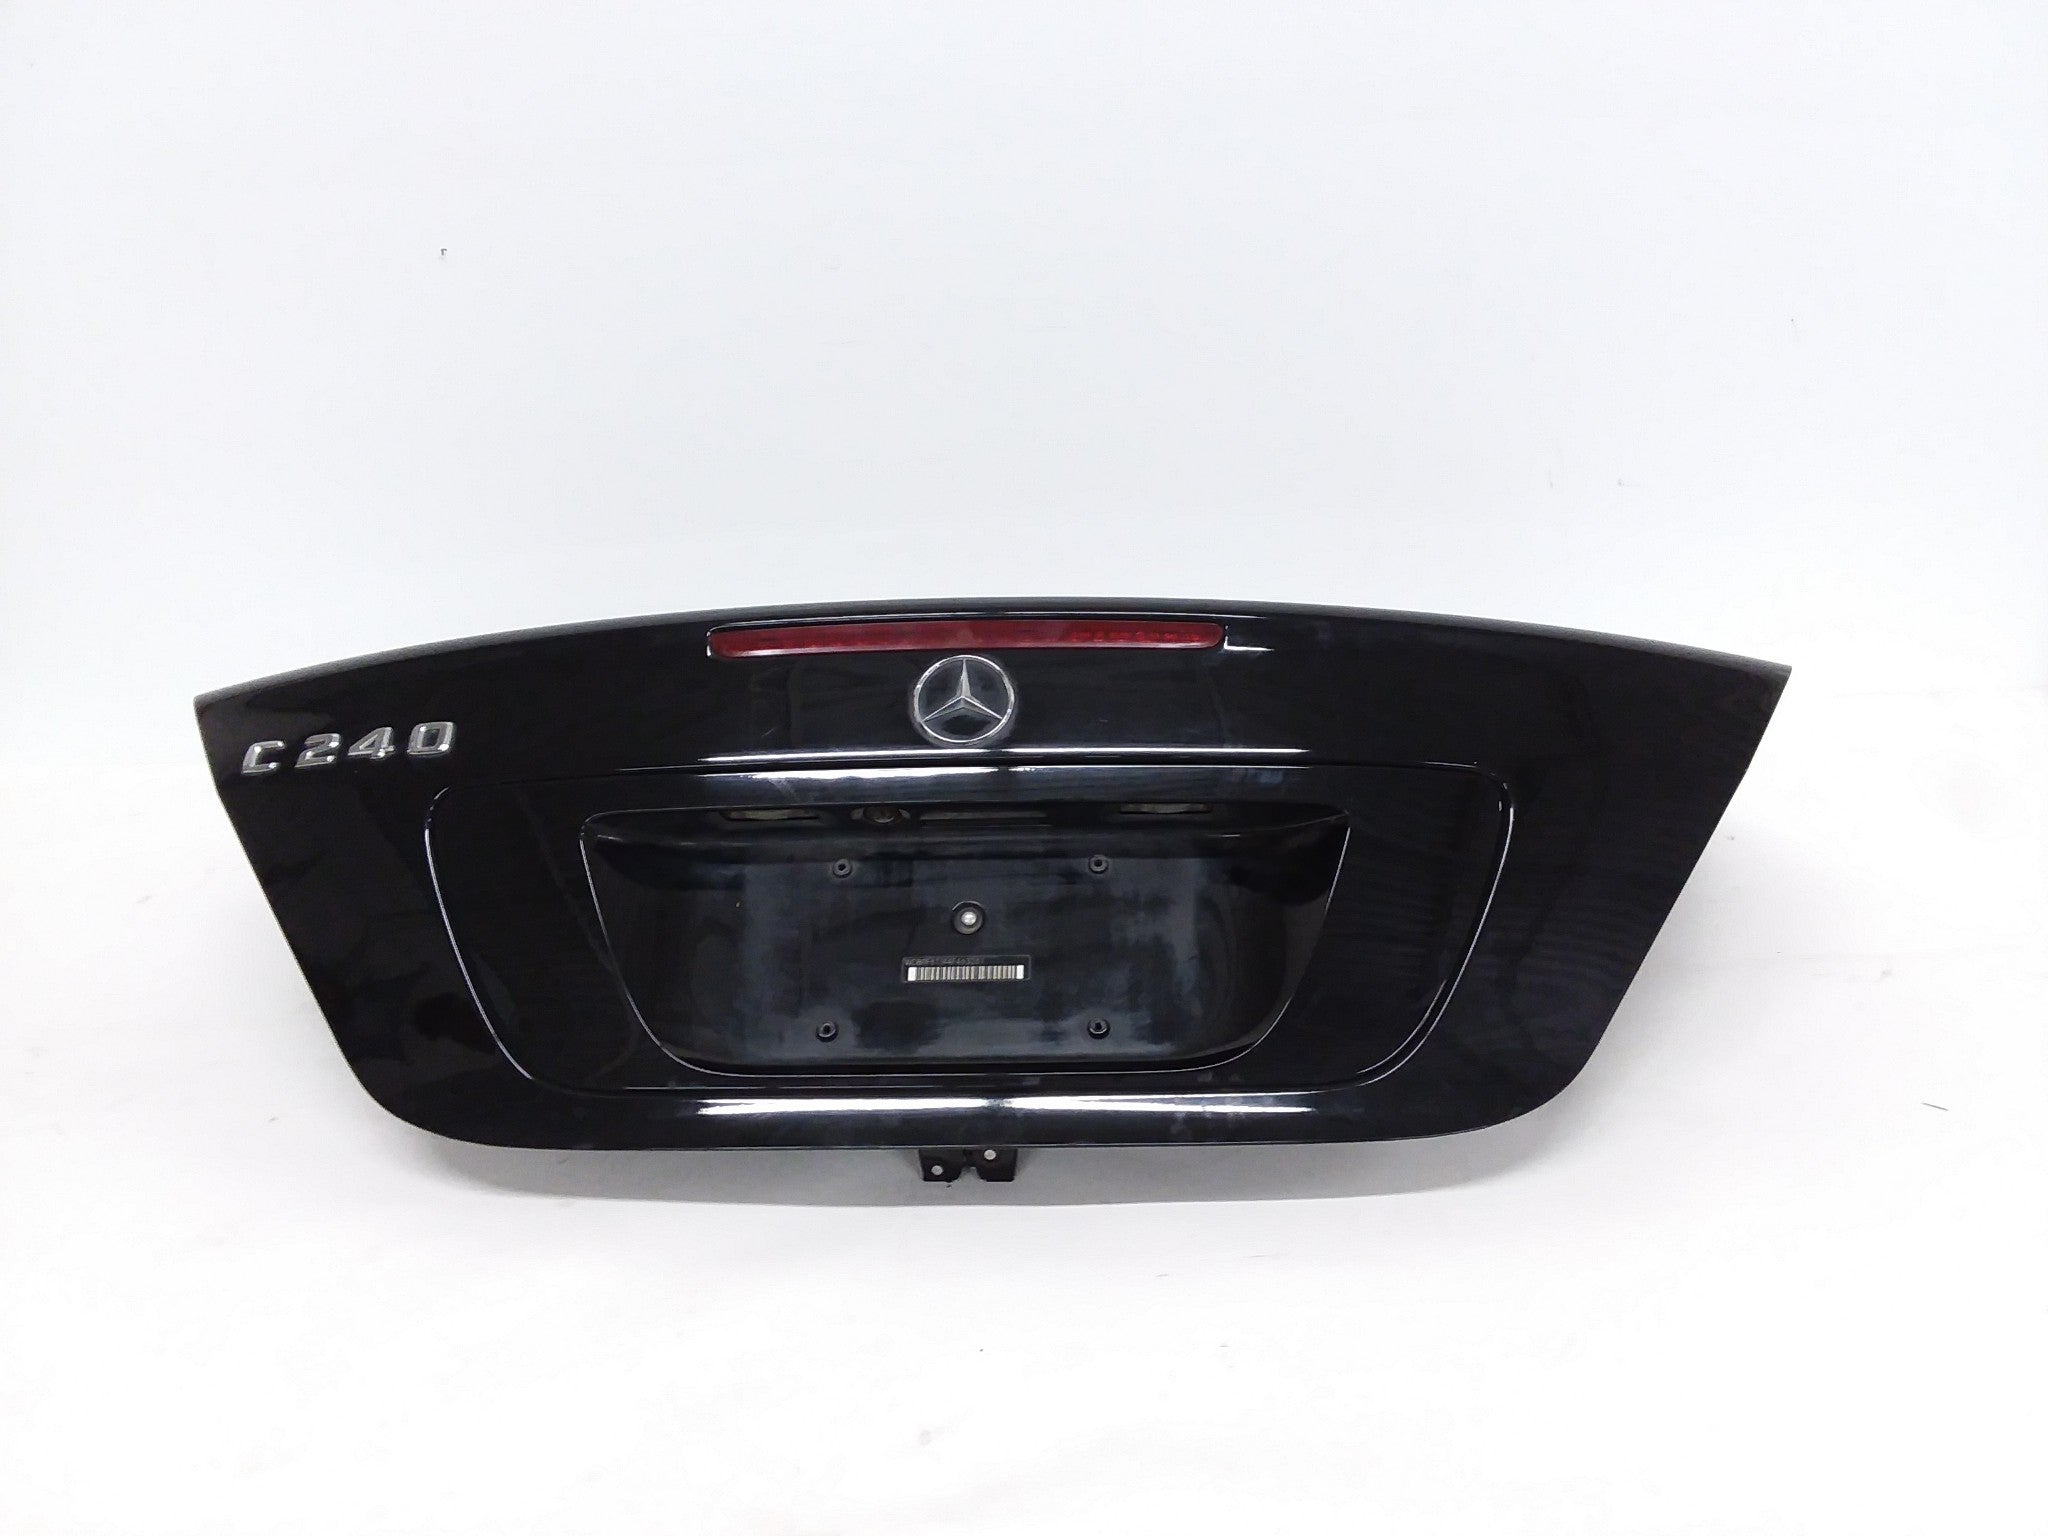 2001 - 2007 MERCEDES-BENZ C240 C230 C320 REAR TRUNK LID HATCH BLACK OEM - Click Receive Auto Parts